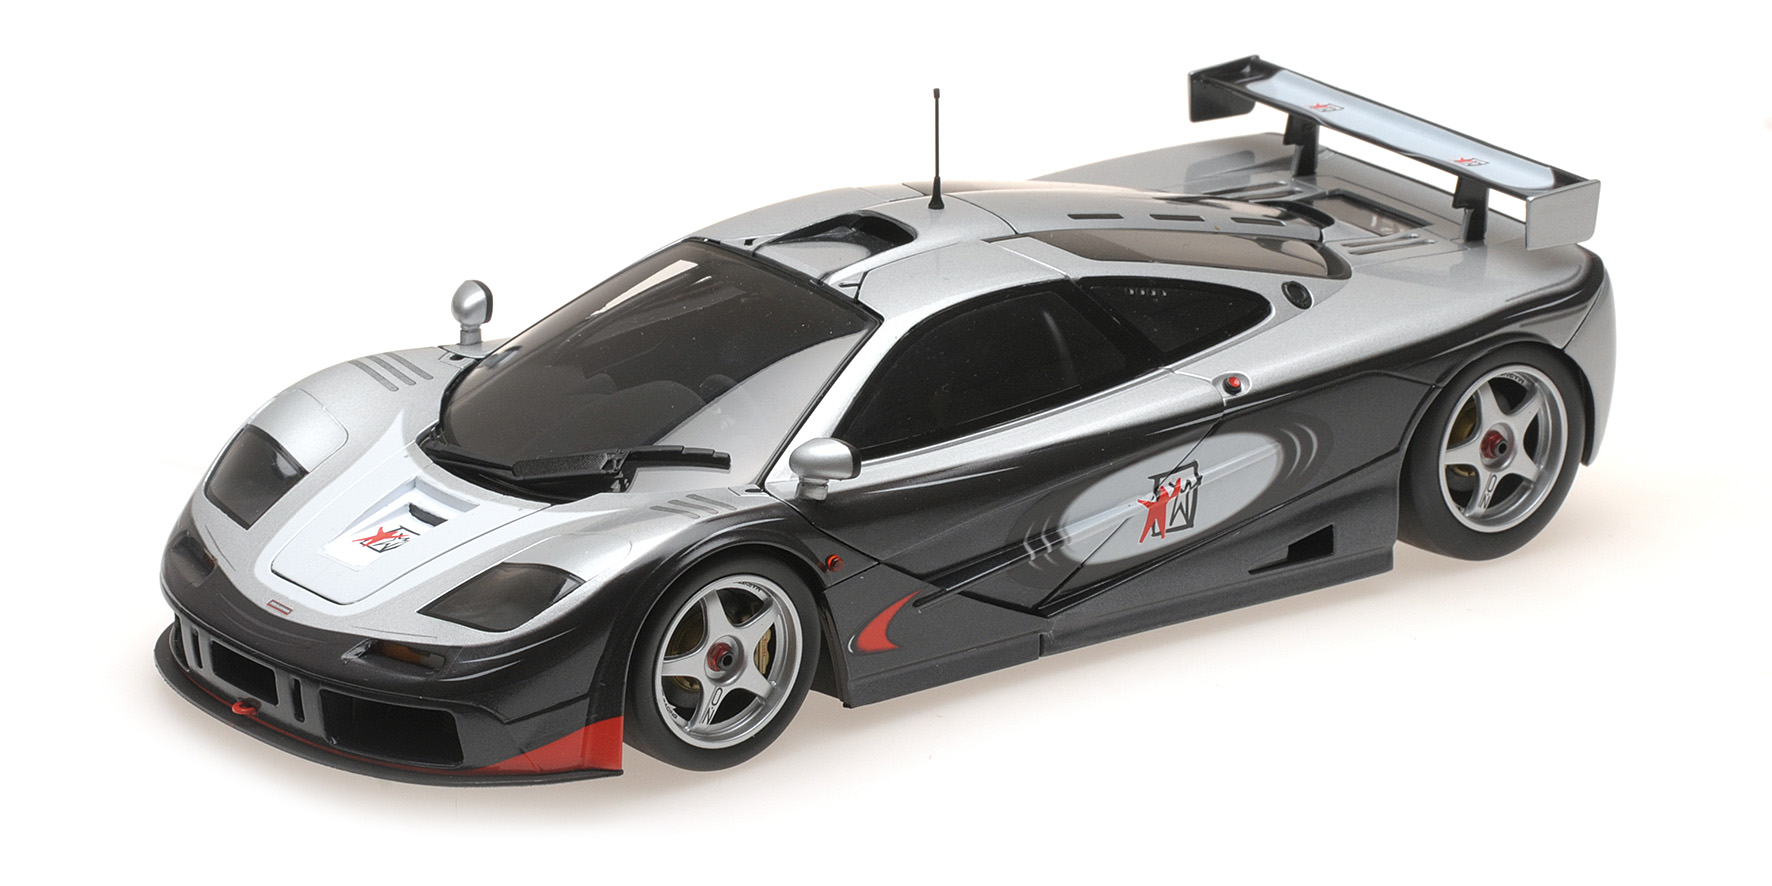 McLaren F1 GTR Adrenaline Program